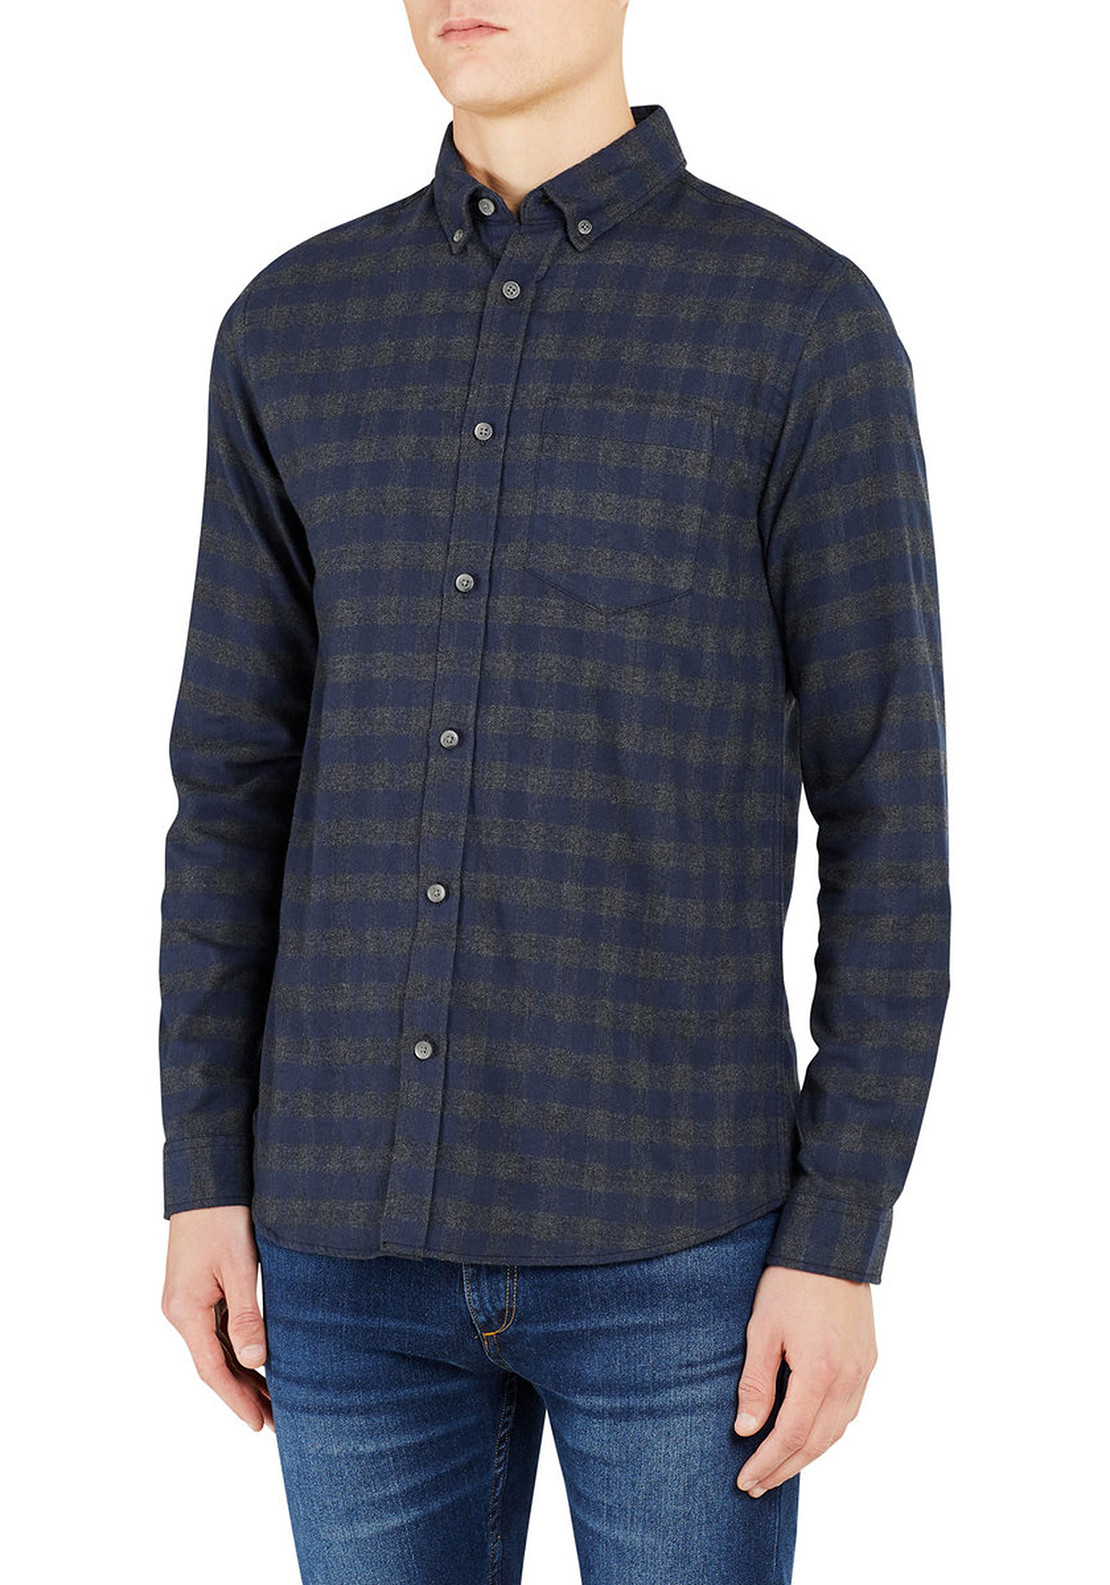 Jack & Jones Originals Mens William Checked Shirt, Navy